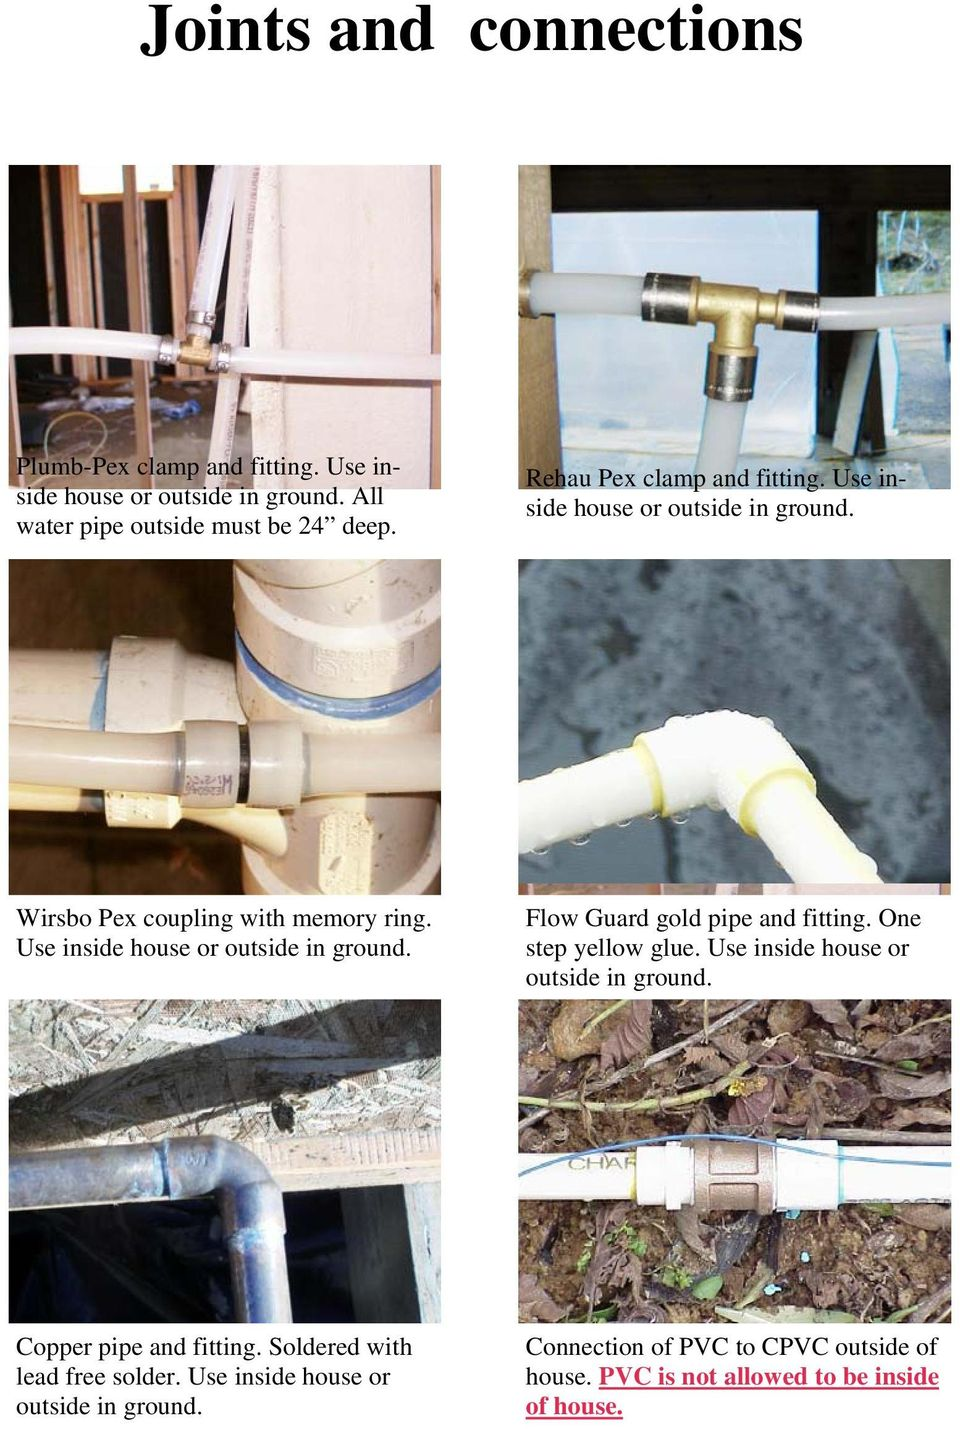 Use inside house or outside in ground. Flow Guard gold pipe and fitting. One step yellow glue. Use inside house or outside in ground.